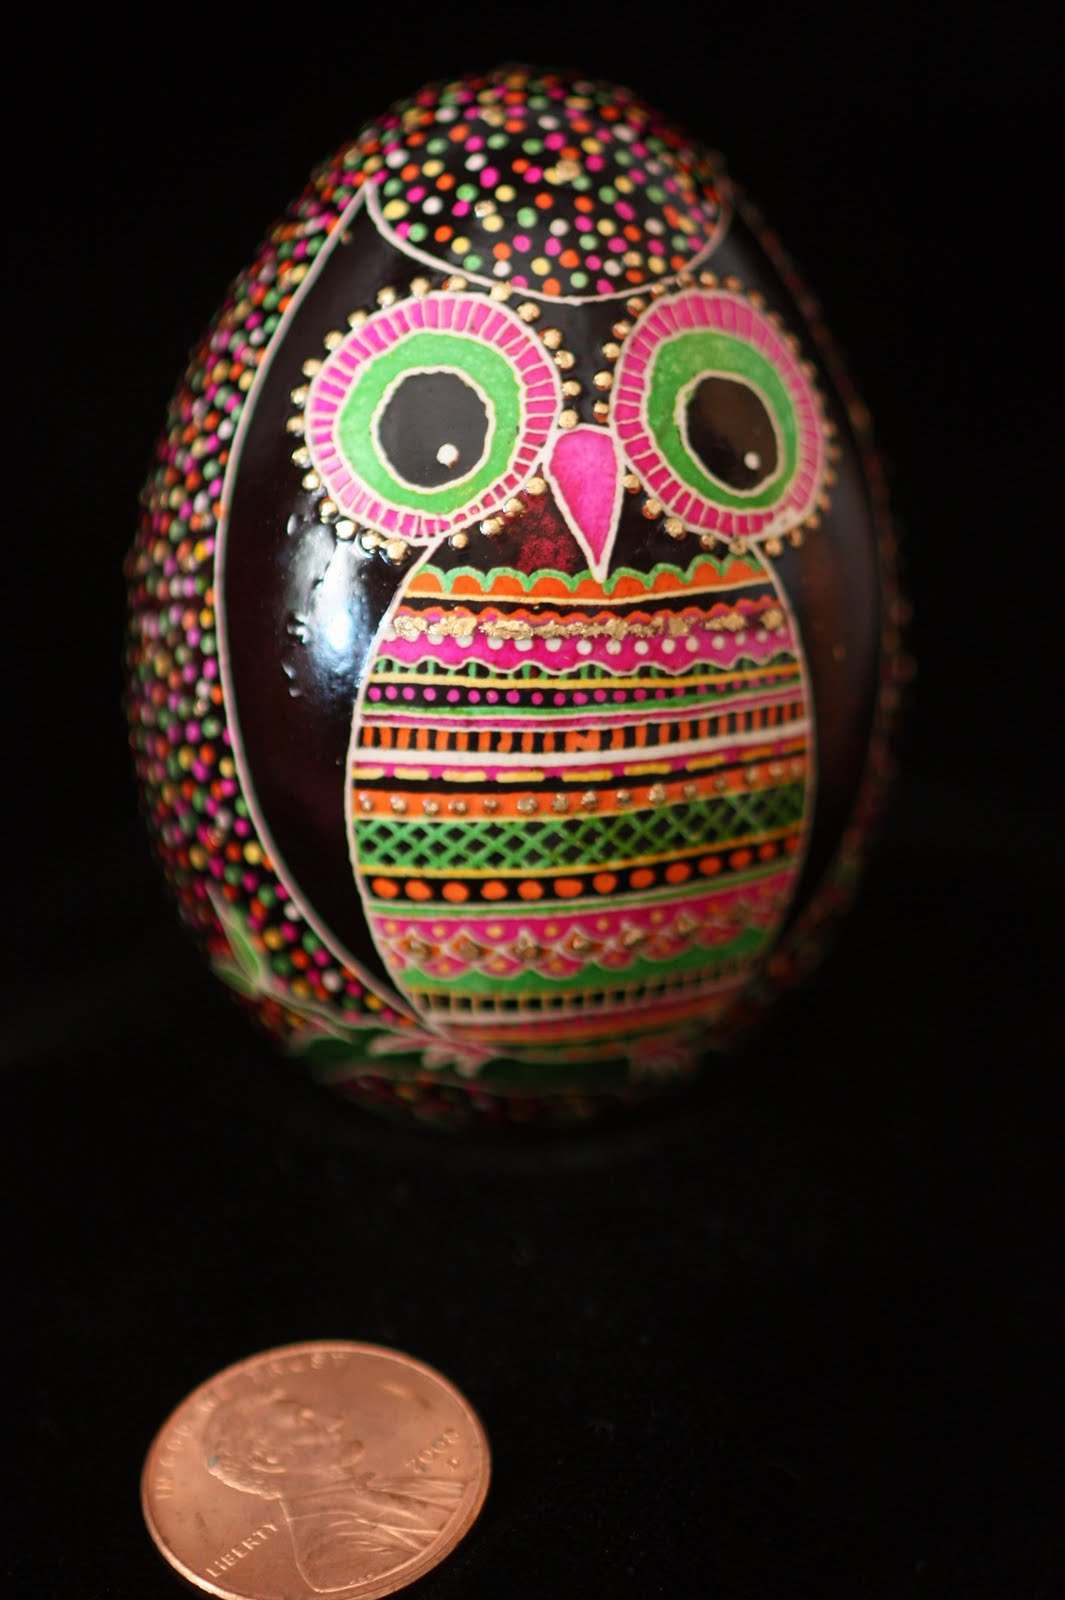 Owl Pysanky with Gilded Dots in Pink, Orange and Green on Black Background